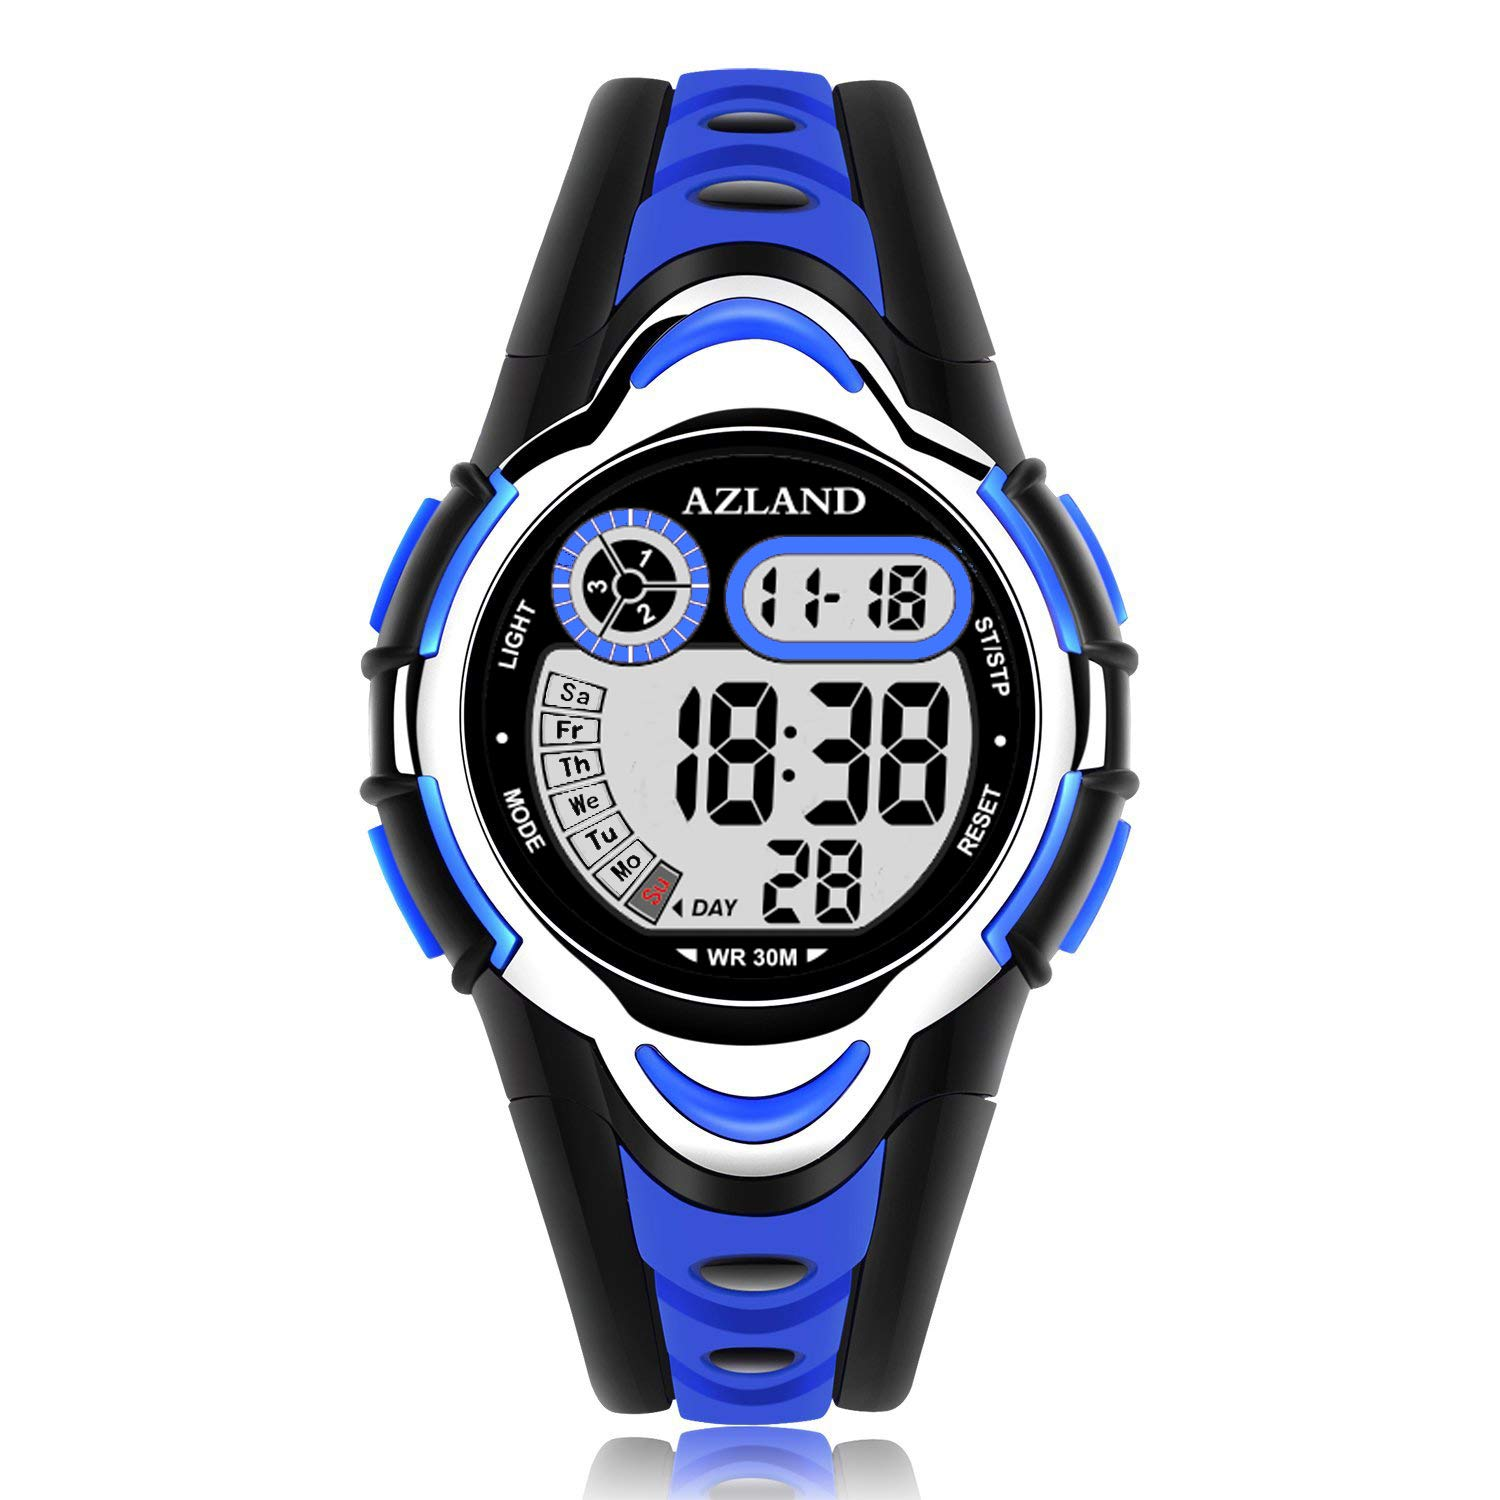 AZLAND Waterproof Swimming Led Digital Sports Watches for Children Kids Girls Boys,Rubber Strap,Blue by AZLAND